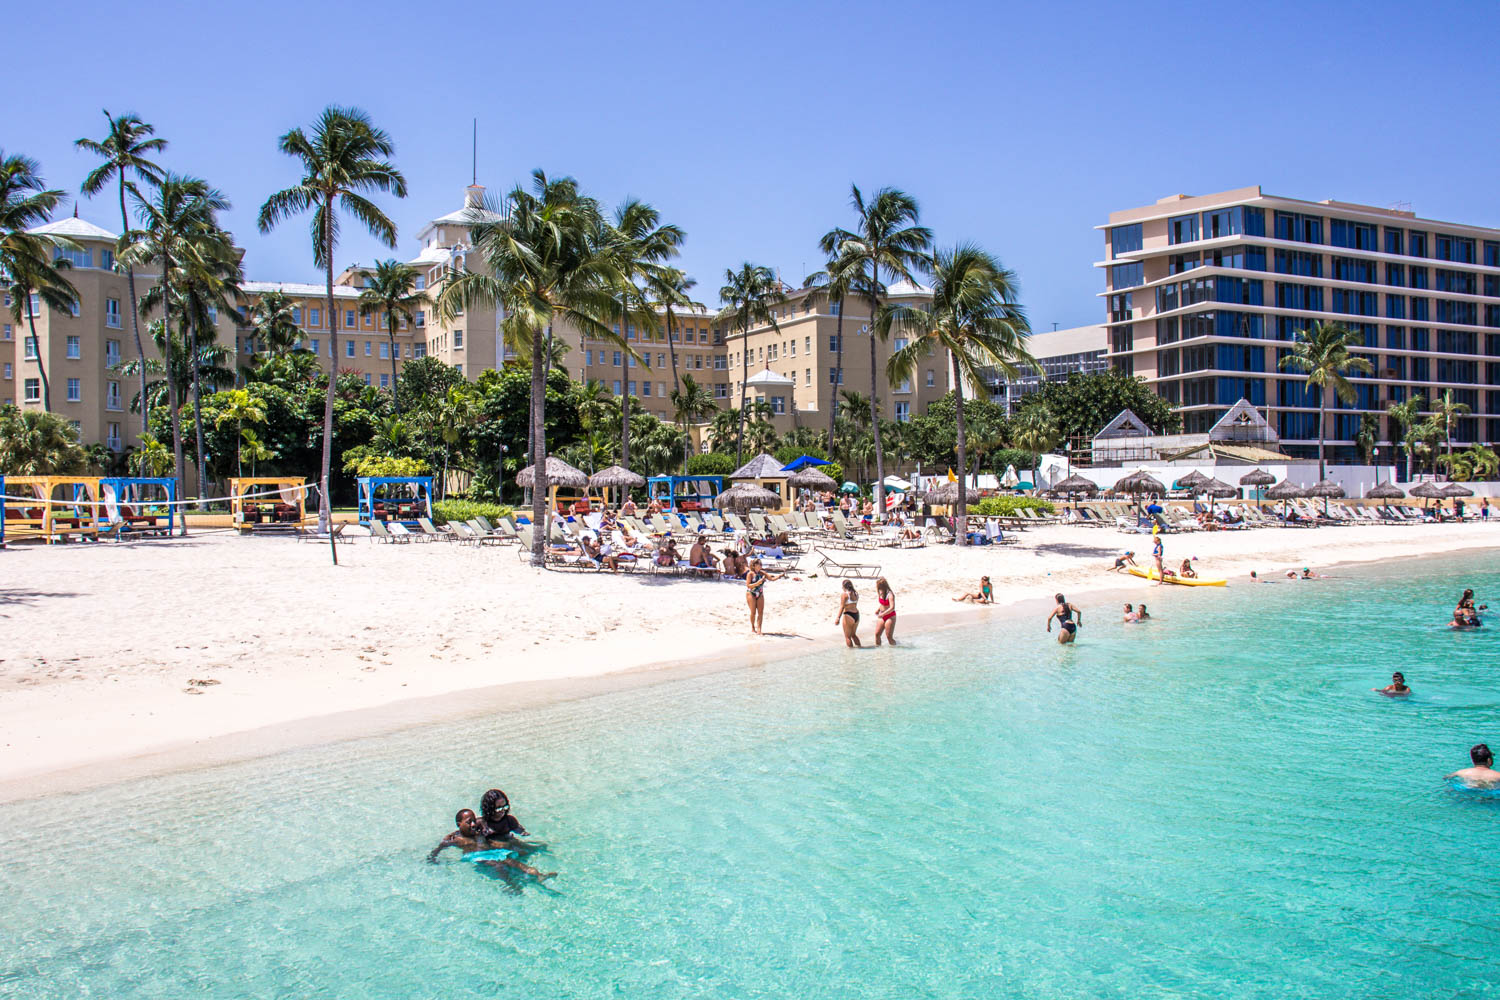 No matter where you are, beautiful beaches will always give you things to do in Nasau on a cruise. There are other things to do in Nassau Bahamas too and places to visit in Bahamas.